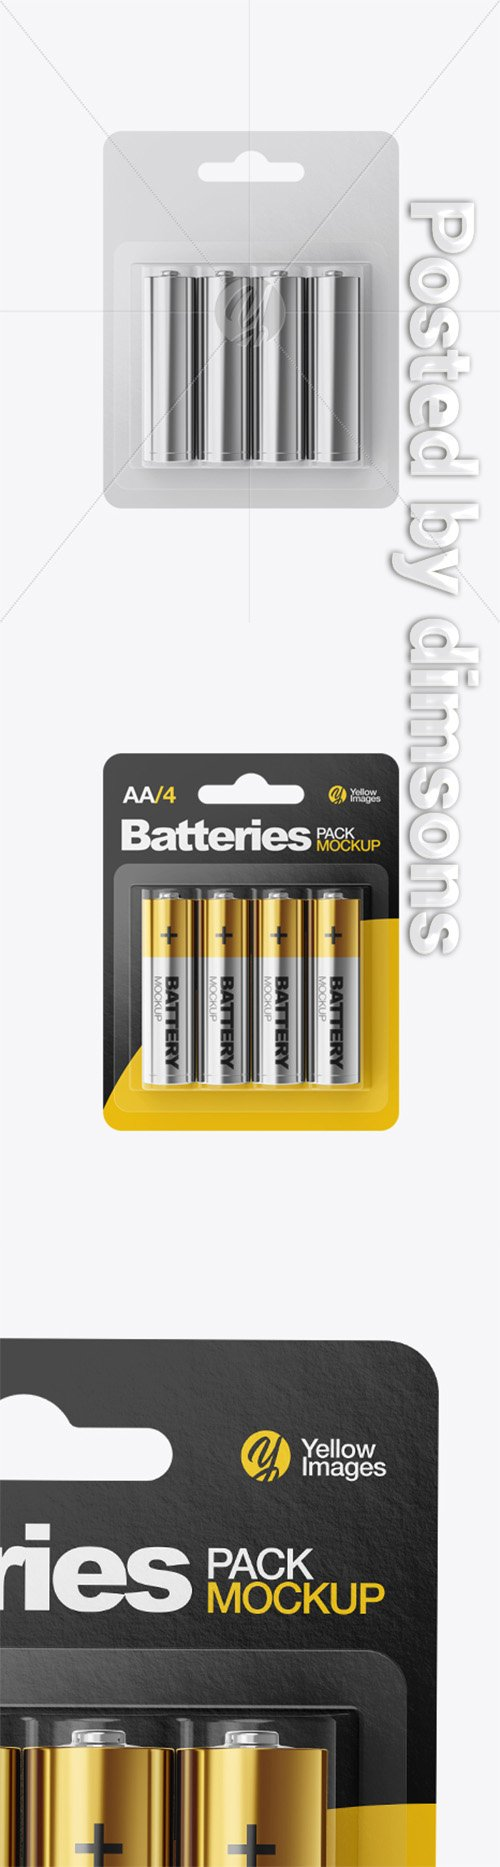 4 Pack Metallic Battery AA Mockup 32897 TIF